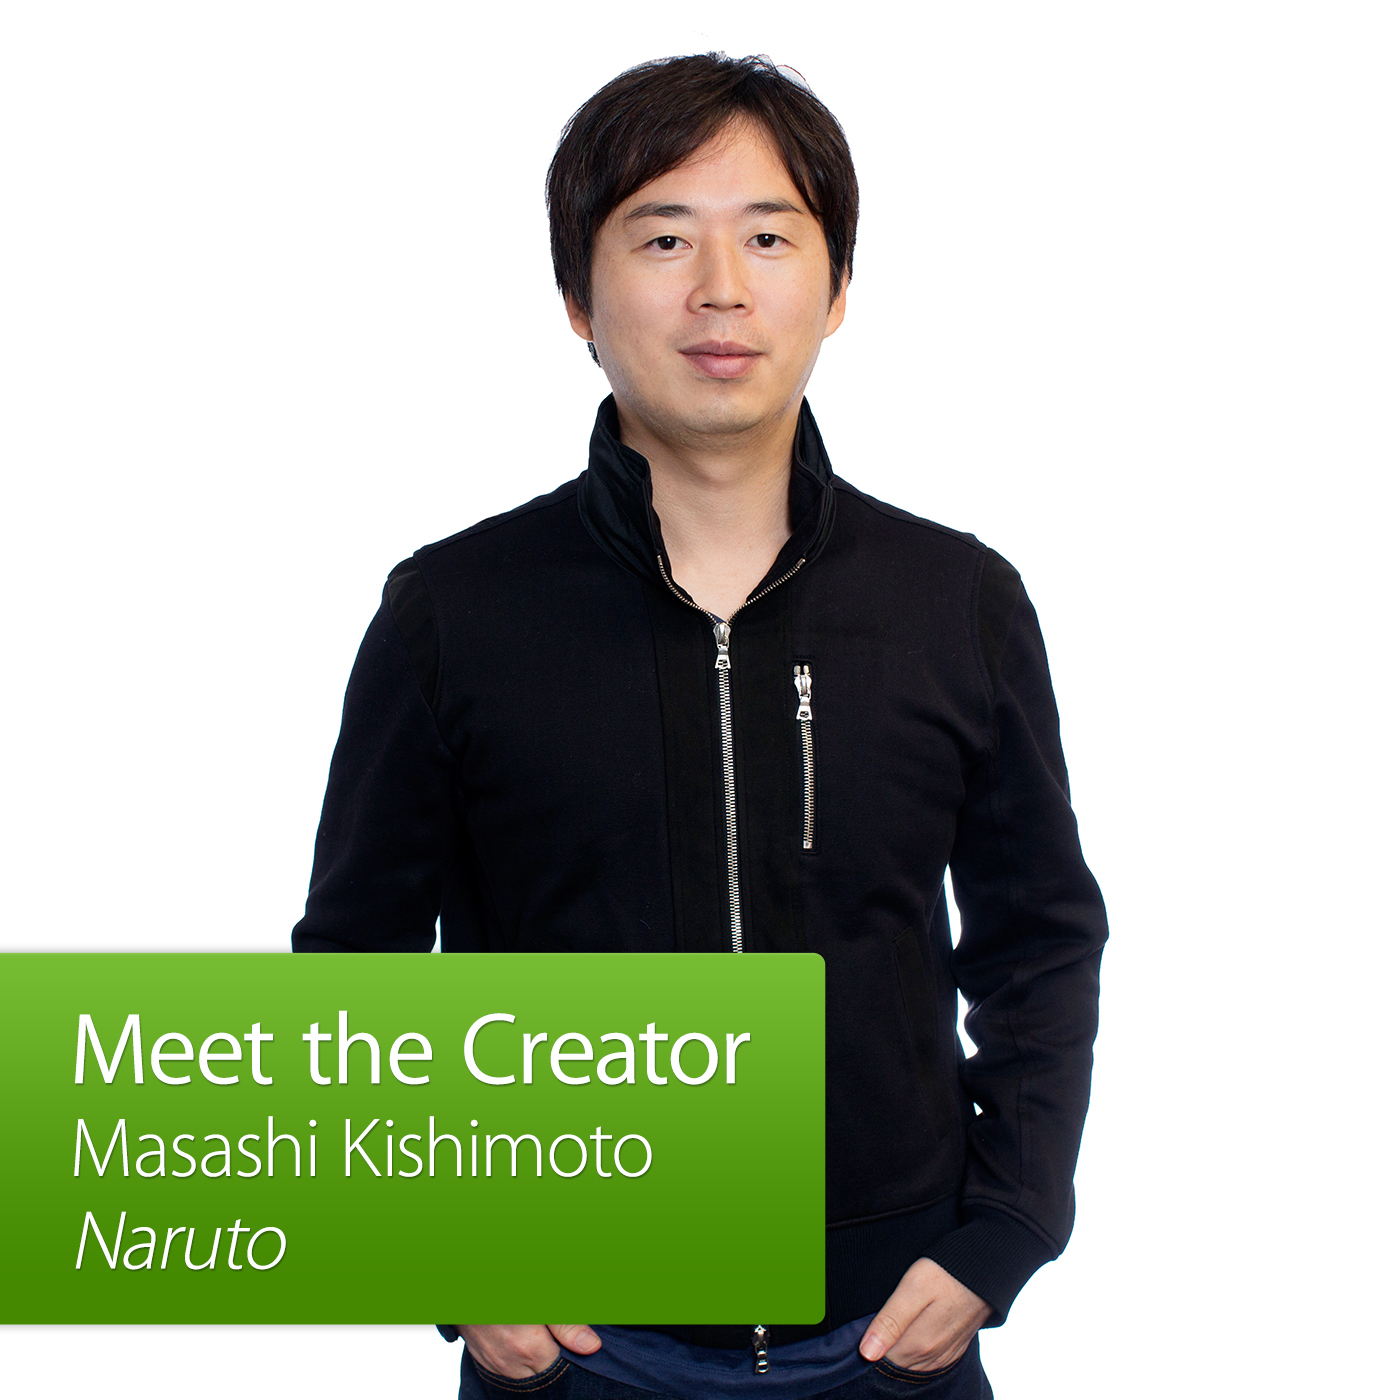 Naruto: Meet the Creator